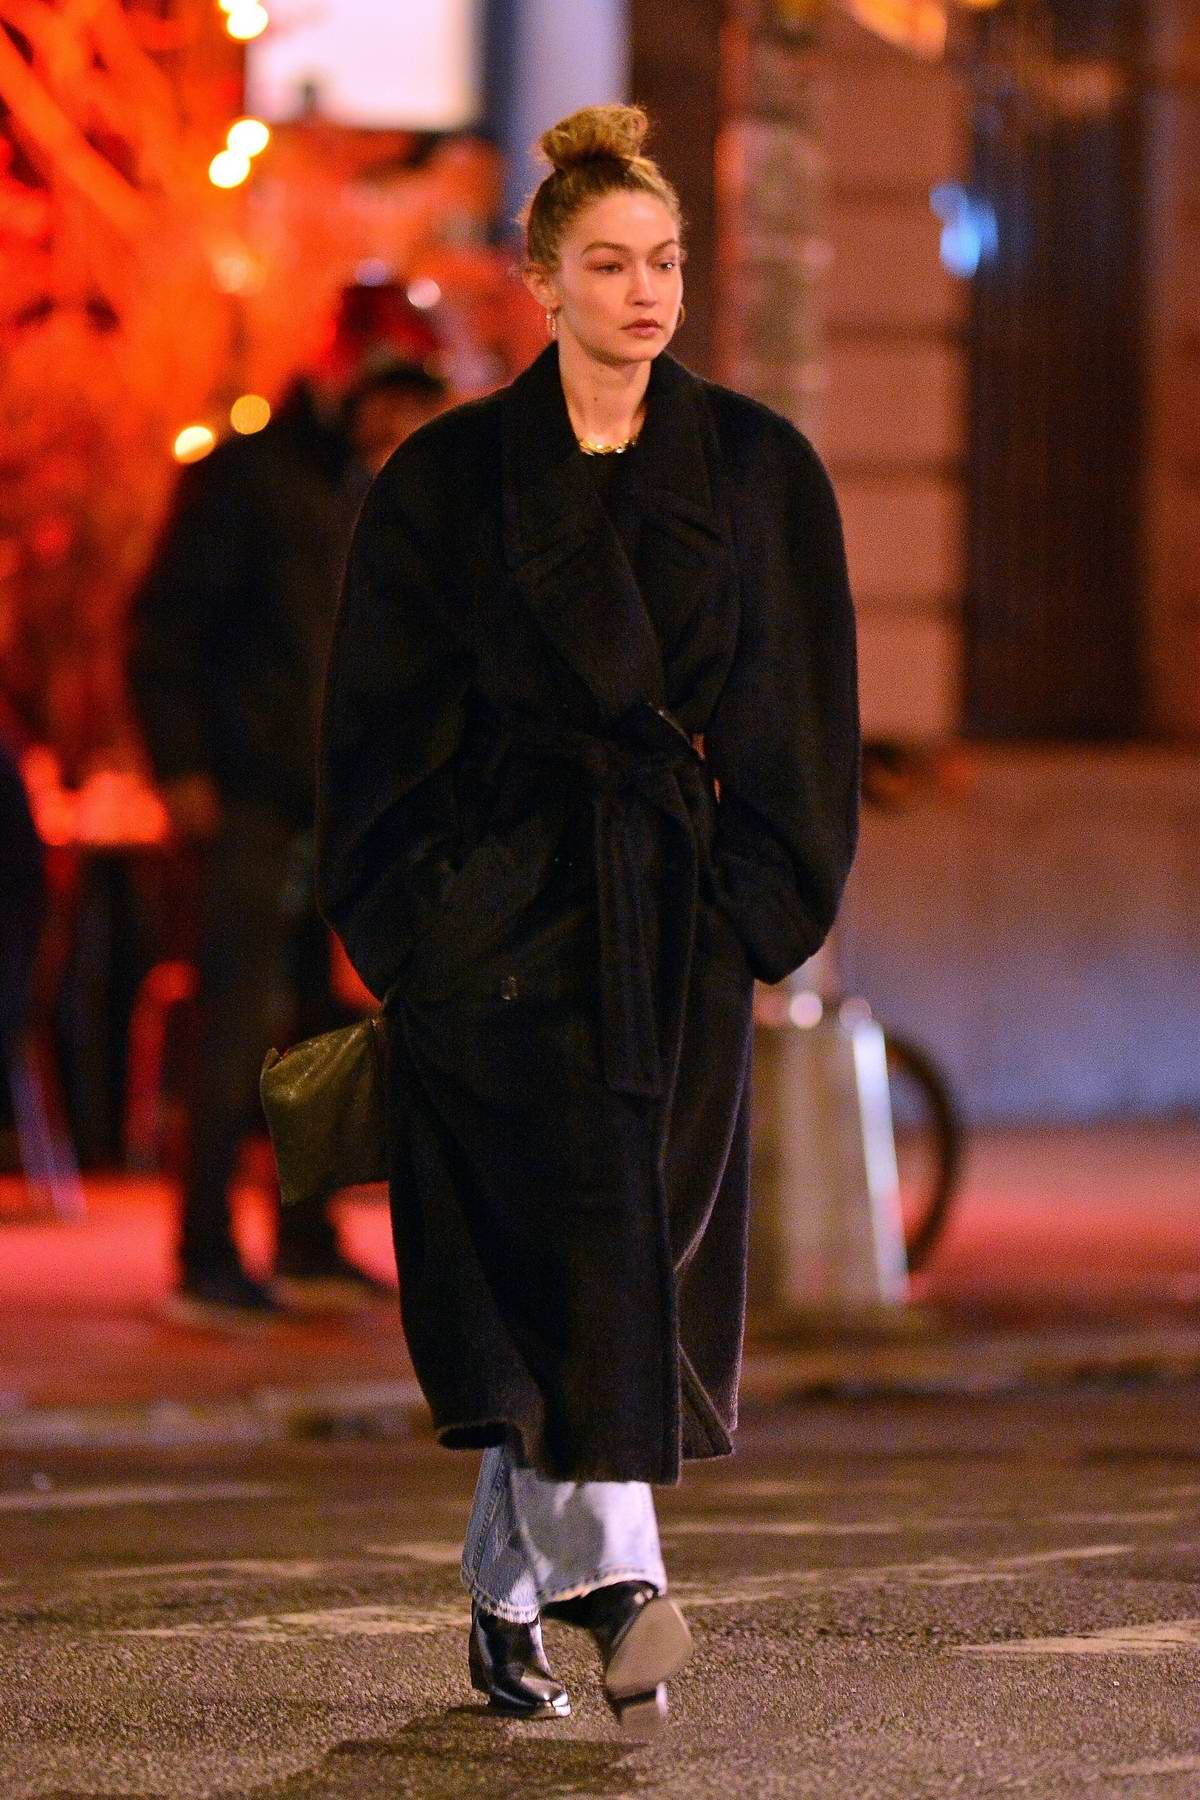 Gigi Hadid bundles up in a black long coat while out for a walk with friends in Soho, New York City